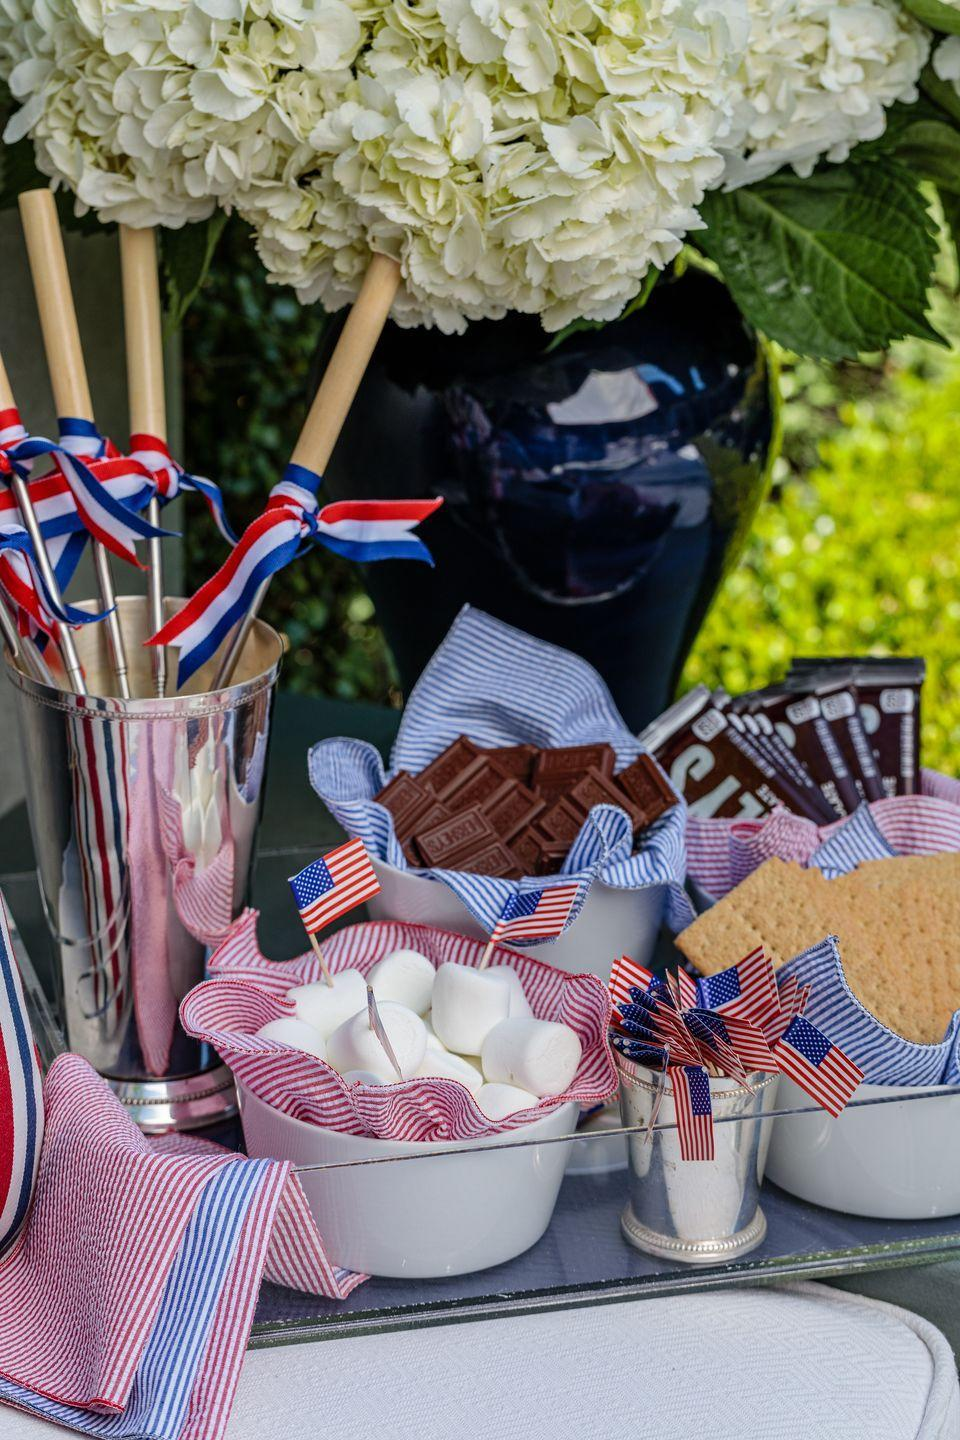 """<p><strong>What are your plans for the Fourth of July this year?</strong></p><p> I grew up going to my family's beach house, and we always made s'mores, so that has become a lifelong July Fourth tradition I continue with my family.</p><p><strong>What are a few of your top summer entertaining tips?</strong></p><p>Especially when it comes to Independence Day, it's important to keep the food easy to eat. I like to offer little nibbles so that all the generations can easily wander off to different parts of the gathering. </p><p>I like to align my offerings to the season. I spent a lot of summers on the coast of Maine, so I love to serve lobster rolls and other nostalgic summer foods. I mix classic with unique, like serving my popsicles infused with berries and White Claw spiked seltzer.</p><p>The minute [guests] arrive, you don't want them to worry about anything. I prep in advance so that I can do the same once the party starts. </p><p>When you're outside and have a large area to entertain in, I like to have something going on in several designated spaces. </p><p><em>Shop the Look: Navy ginger jar, <a href=""""https://shoplohome.com/"""" rel=""""nofollow noopener"""" target=""""_blank"""" data-ylk=""""slk:Lo Home"""" class=""""link rapid-noclick-resp"""">Lo Home</a>. Lucite tray, <a href=""""https://go.redirectingat.com?id=74968X1596630&url=https%3A%2F%2Fwww.markandgraham.com%2F&sref=https%3A%2F%2Fwww.redbookmag.com%2Flife%2Fg36916404%2Fsummer-entertaining-ideas%2F"""" rel=""""nofollow noopener"""" target=""""_blank"""" data-ylk=""""slk:Mark and Graham"""" class=""""link rapid-noclick-resp"""">Mark and Graham</a>. Seersucker napkins, Dot and Army from <a href=""""https://go.redirectingat.com?id=74968X1596630&url=https%3A%2F%2Ffood52.com%2F&sref=https%3A%2F%2Fwww.redbookmag.com%2Flife%2Fg36916404%2Fsummer-entertaining-ideas%2F"""" rel=""""nofollow noopener"""" target=""""_blank"""" data-ylk=""""slk:Food52"""" class=""""link rapid-noclick-resp"""">Food52</a>. White bowls, <a href=""""https://go.redirectingat.com?id=74968X1596630&url=https%3A%2F%2Fwww.crateandbar"""